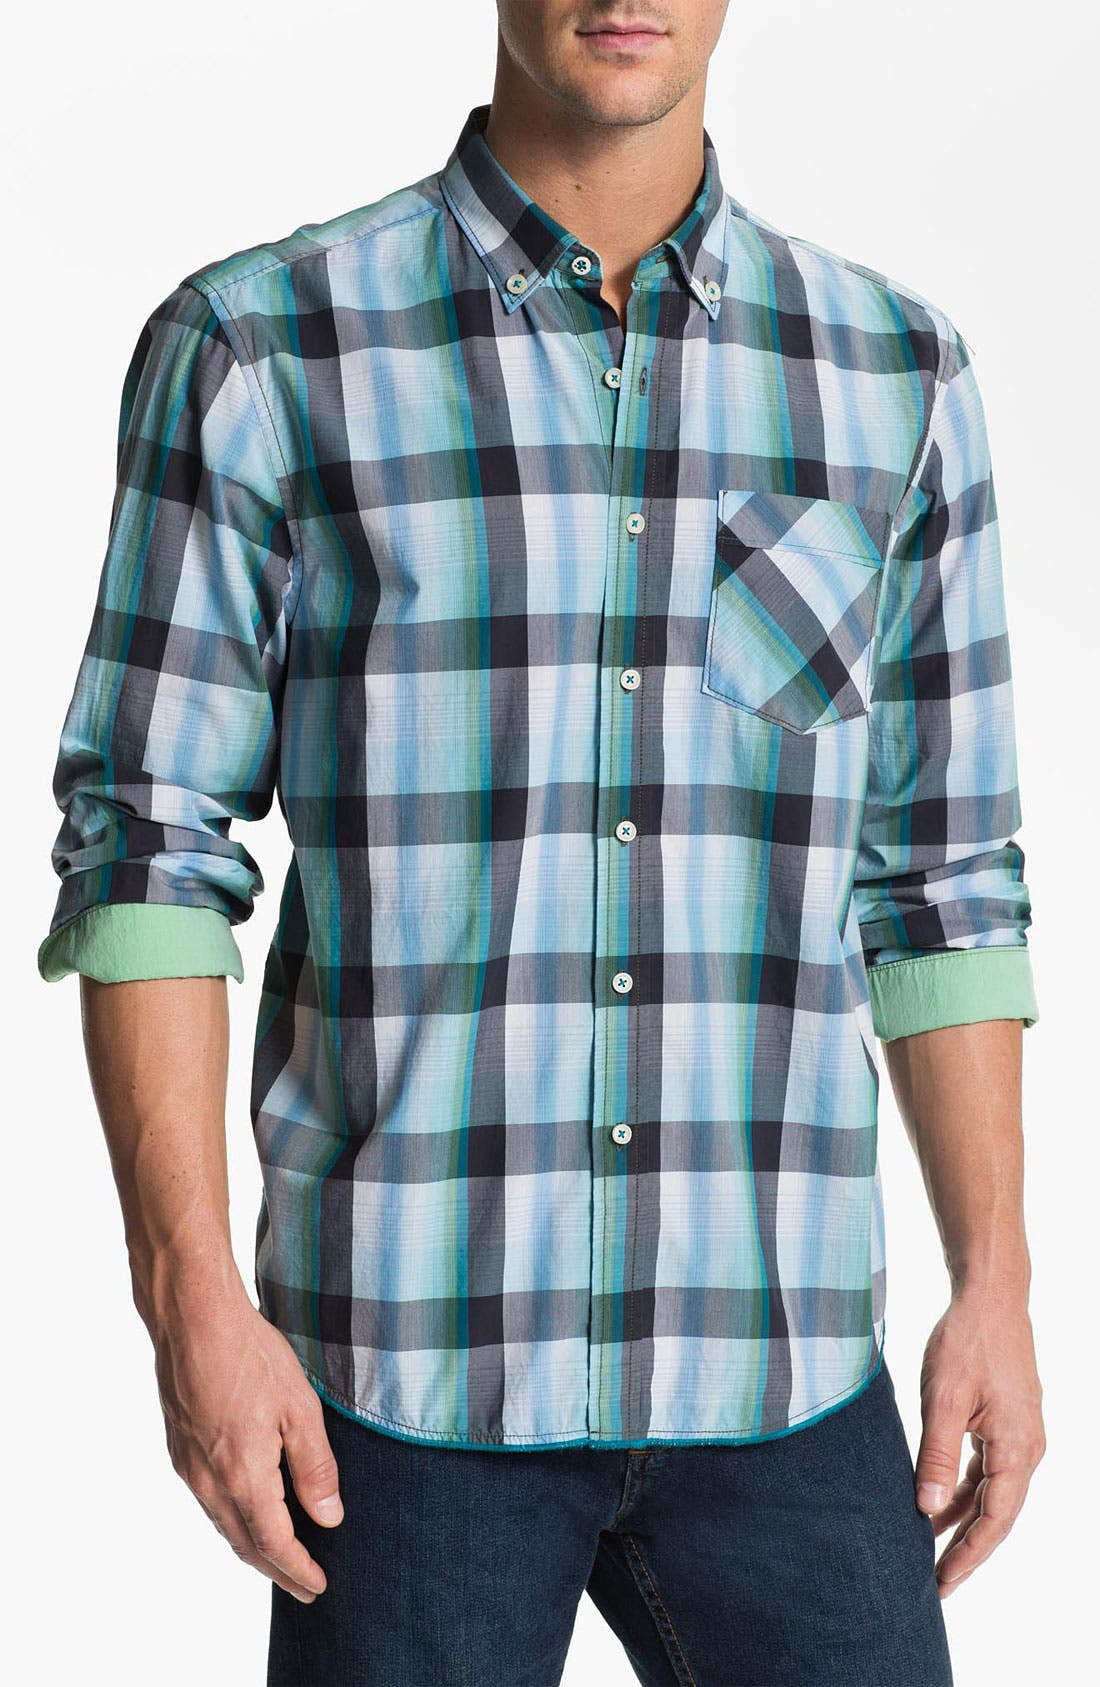 Alternate Image 1 Selected - Tommy Bahama Denim 'Plane to Train' Sport Shirt